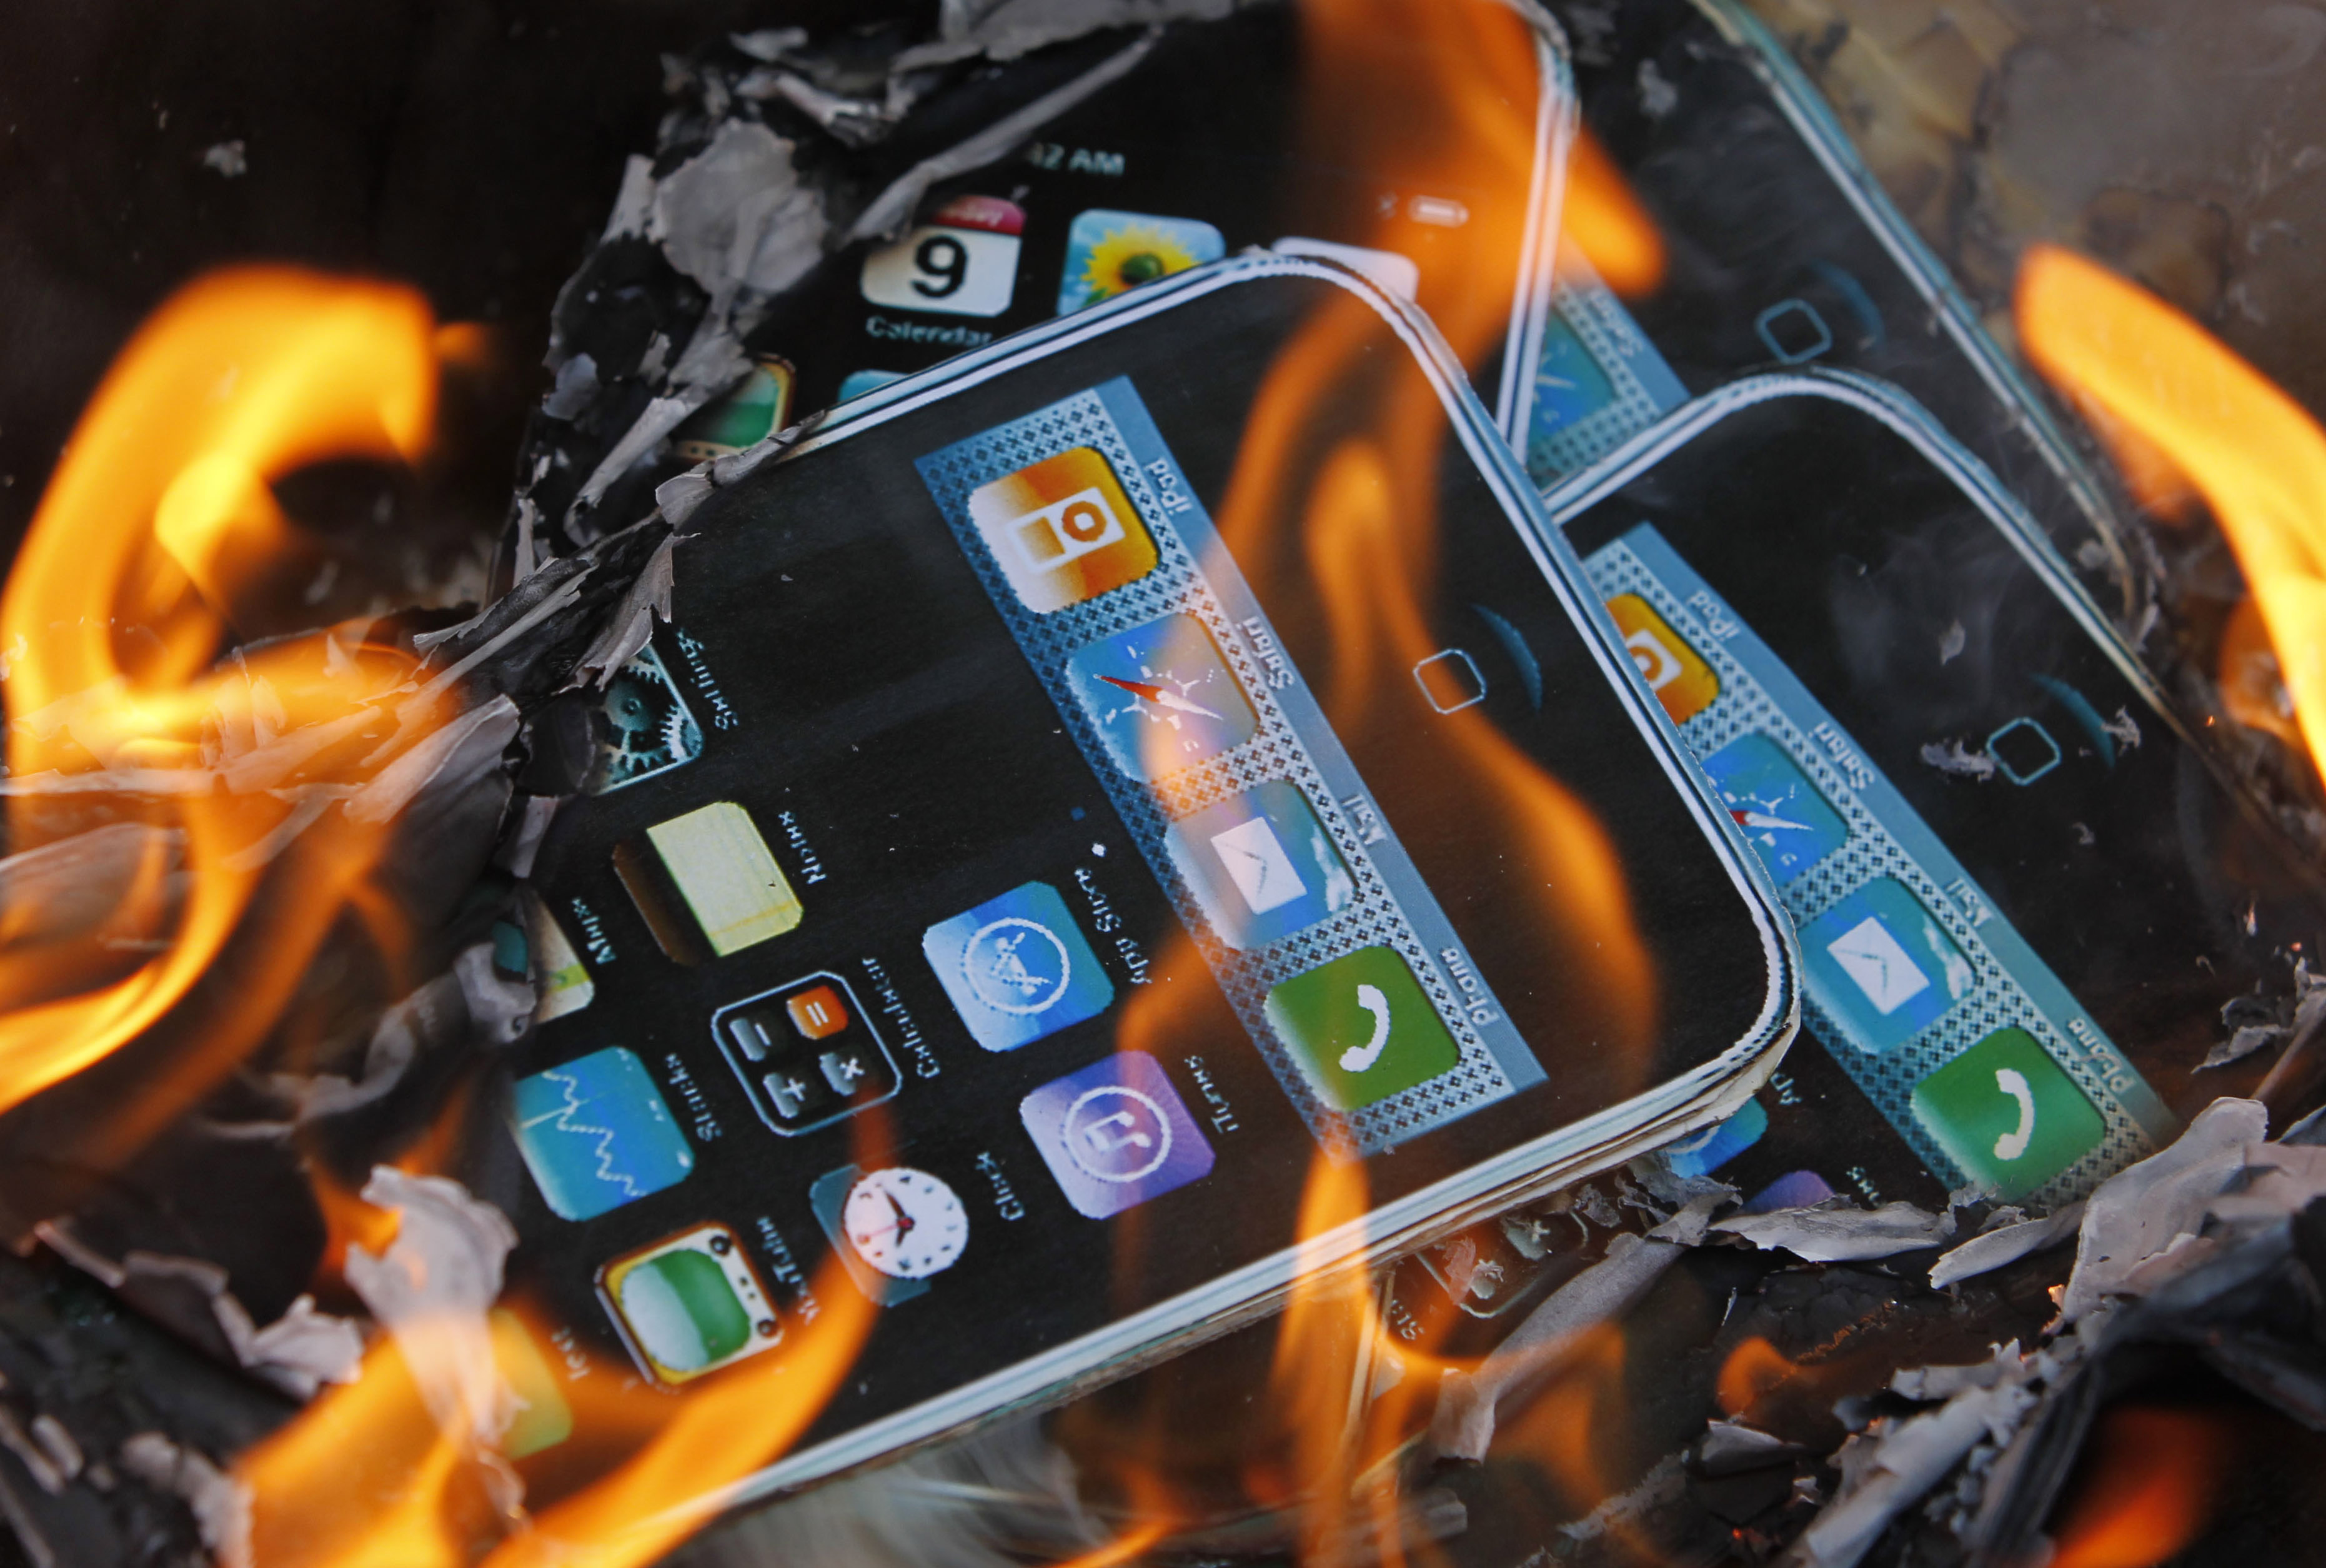 Cardboard cutouts resembling iPhones are sent on fire by labor activists near the Foxconn office in Hong Kong on May 25.